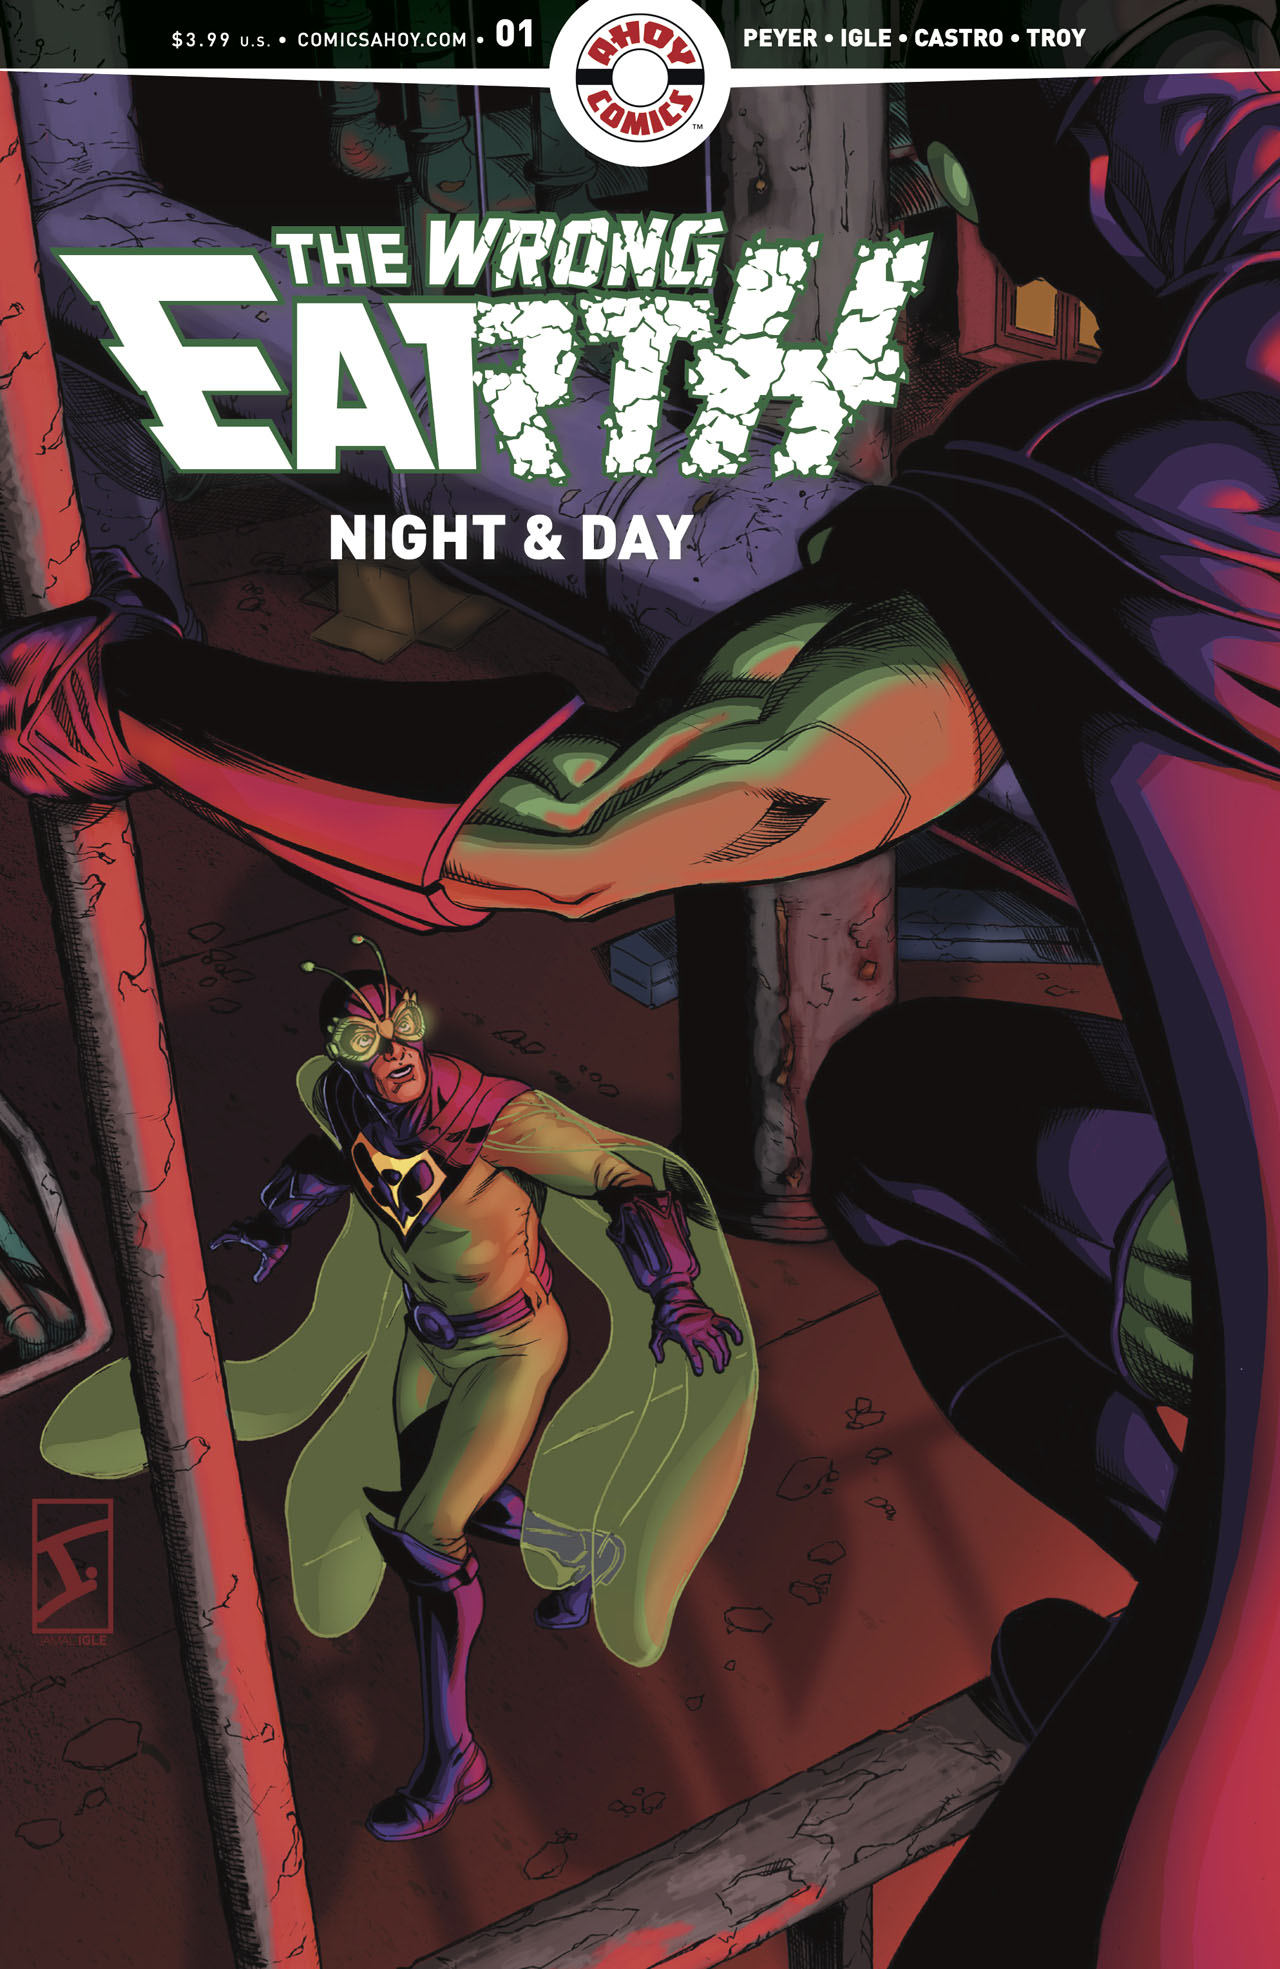 The Wrong Earth Night & Day #1c